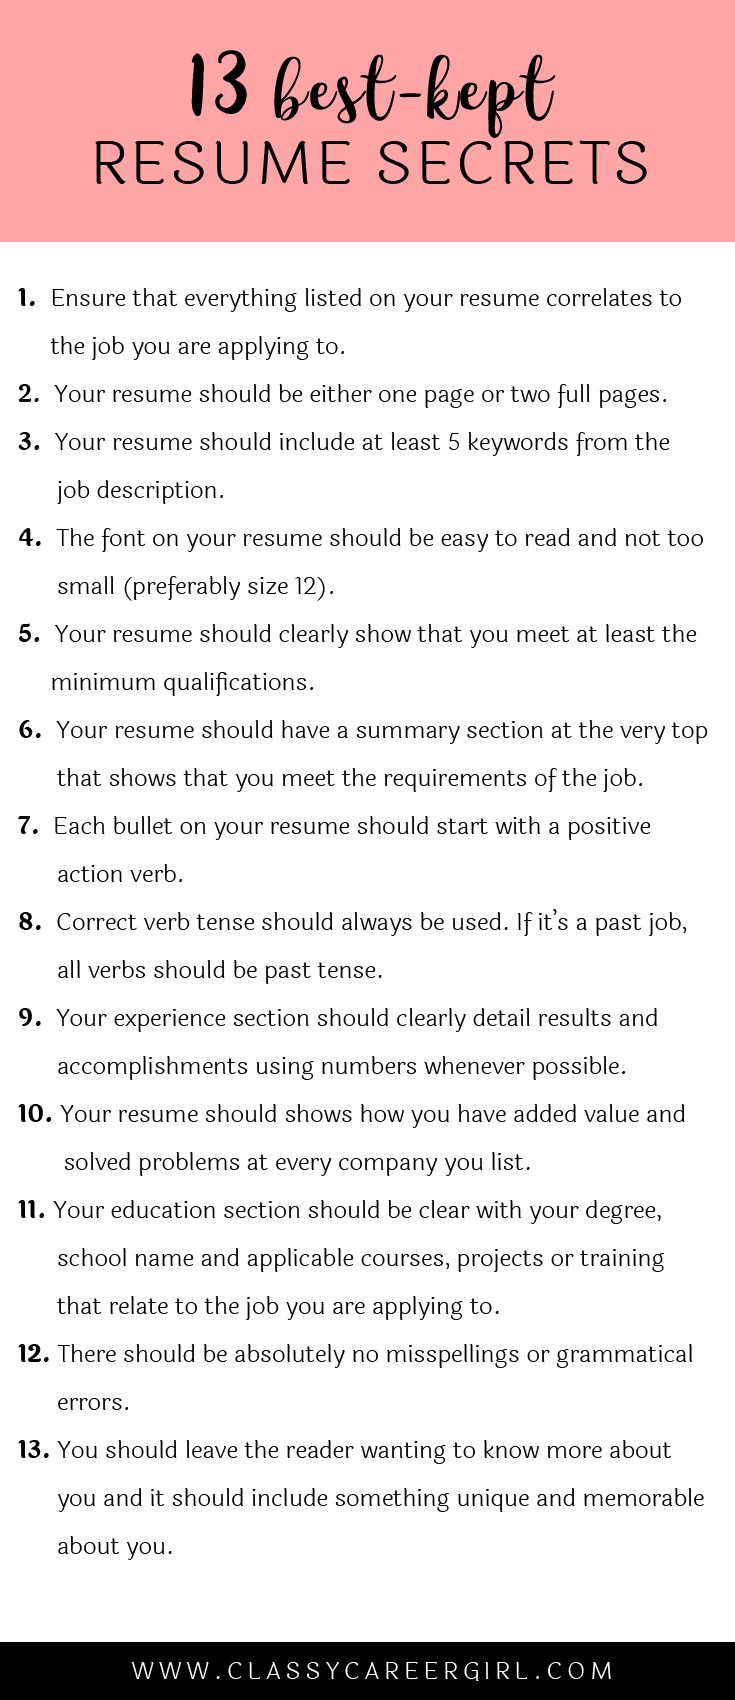 Opposenewapstandardsus  Picturesque  Ideas About Resume On Pinterest  Cv Format Resume  With Goodlooking Some Hiring Managers Will Toss Your Resume Out If You Dont Know These  With Captivating Resume Mistakes Also Cna Resume Skills In Addition Different Types Of Resumes And Resume Design Templates As Well As Customer Service Resume Samples Additionally Cpa Resume From Pinterestcom With Opposenewapstandardsus  Goodlooking  Ideas About Resume On Pinterest  Cv Format Resume  With Captivating Some Hiring Managers Will Toss Your Resume Out If You Dont Know These  And Picturesque Resume Mistakes Also Cna Resume Skills In Addition Different Types Of Resumes From Pinterestcom